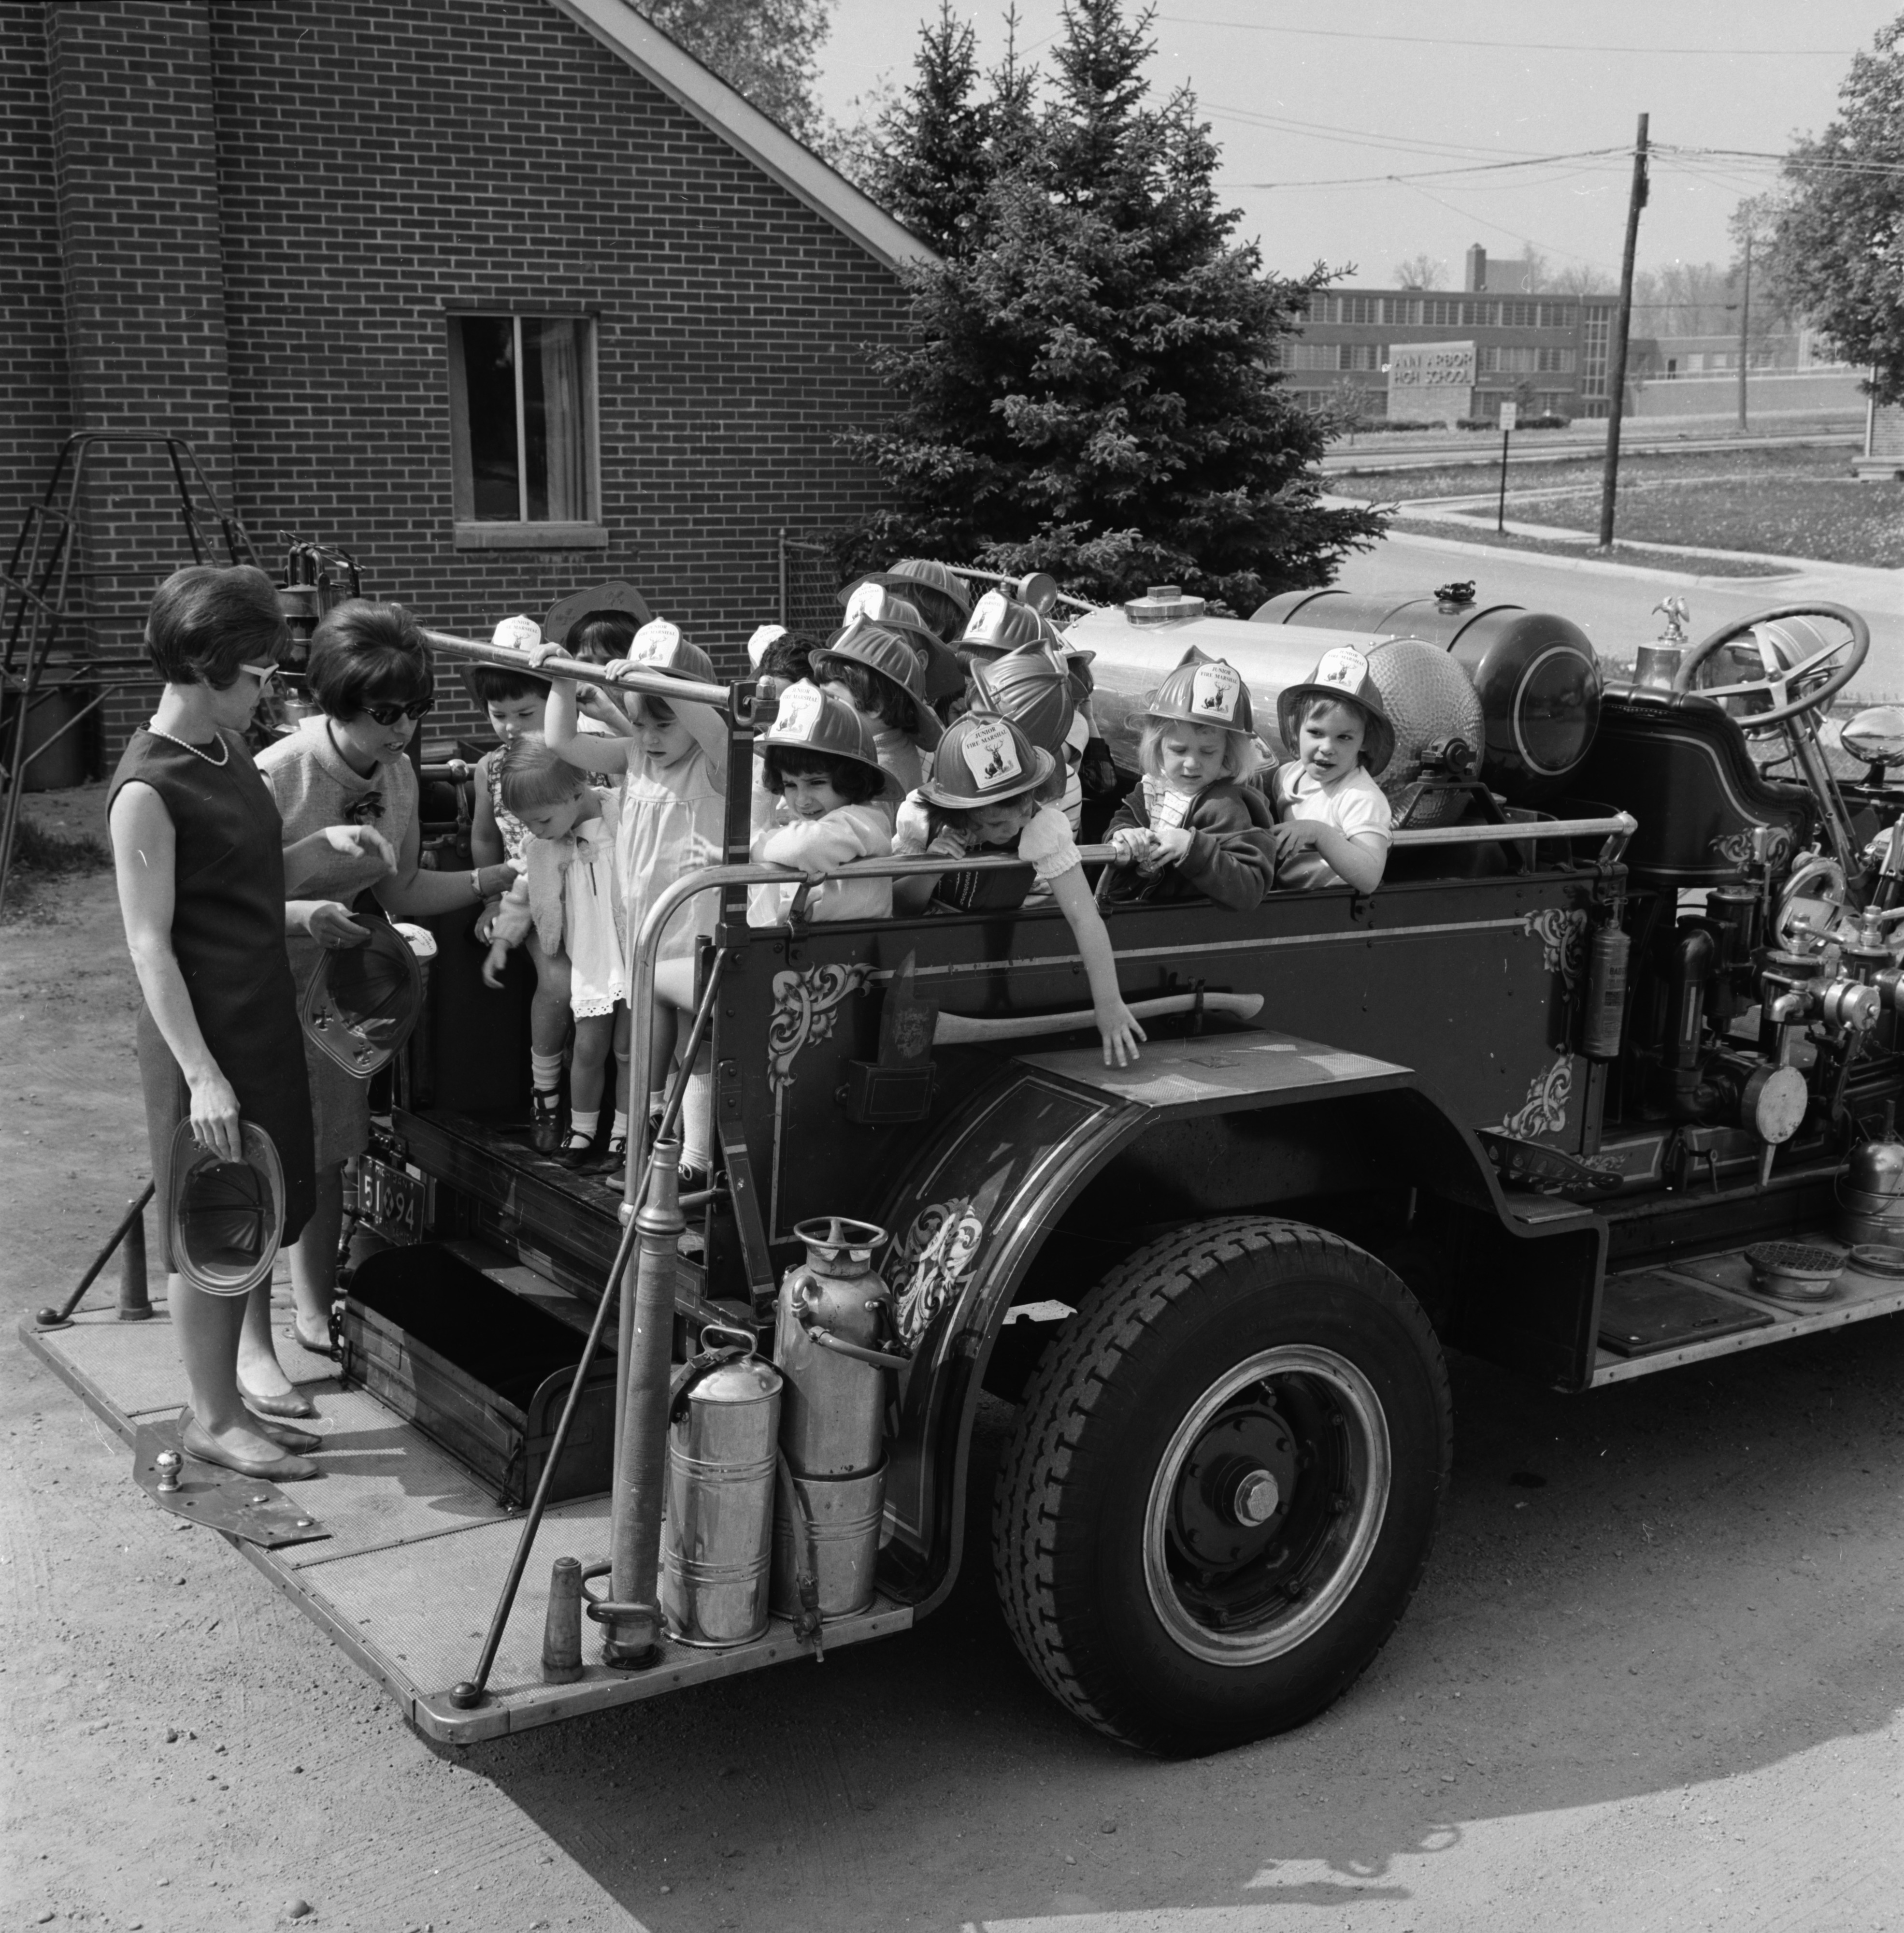 Jack and Jill Nursery School children visit fire station, May 1967 image